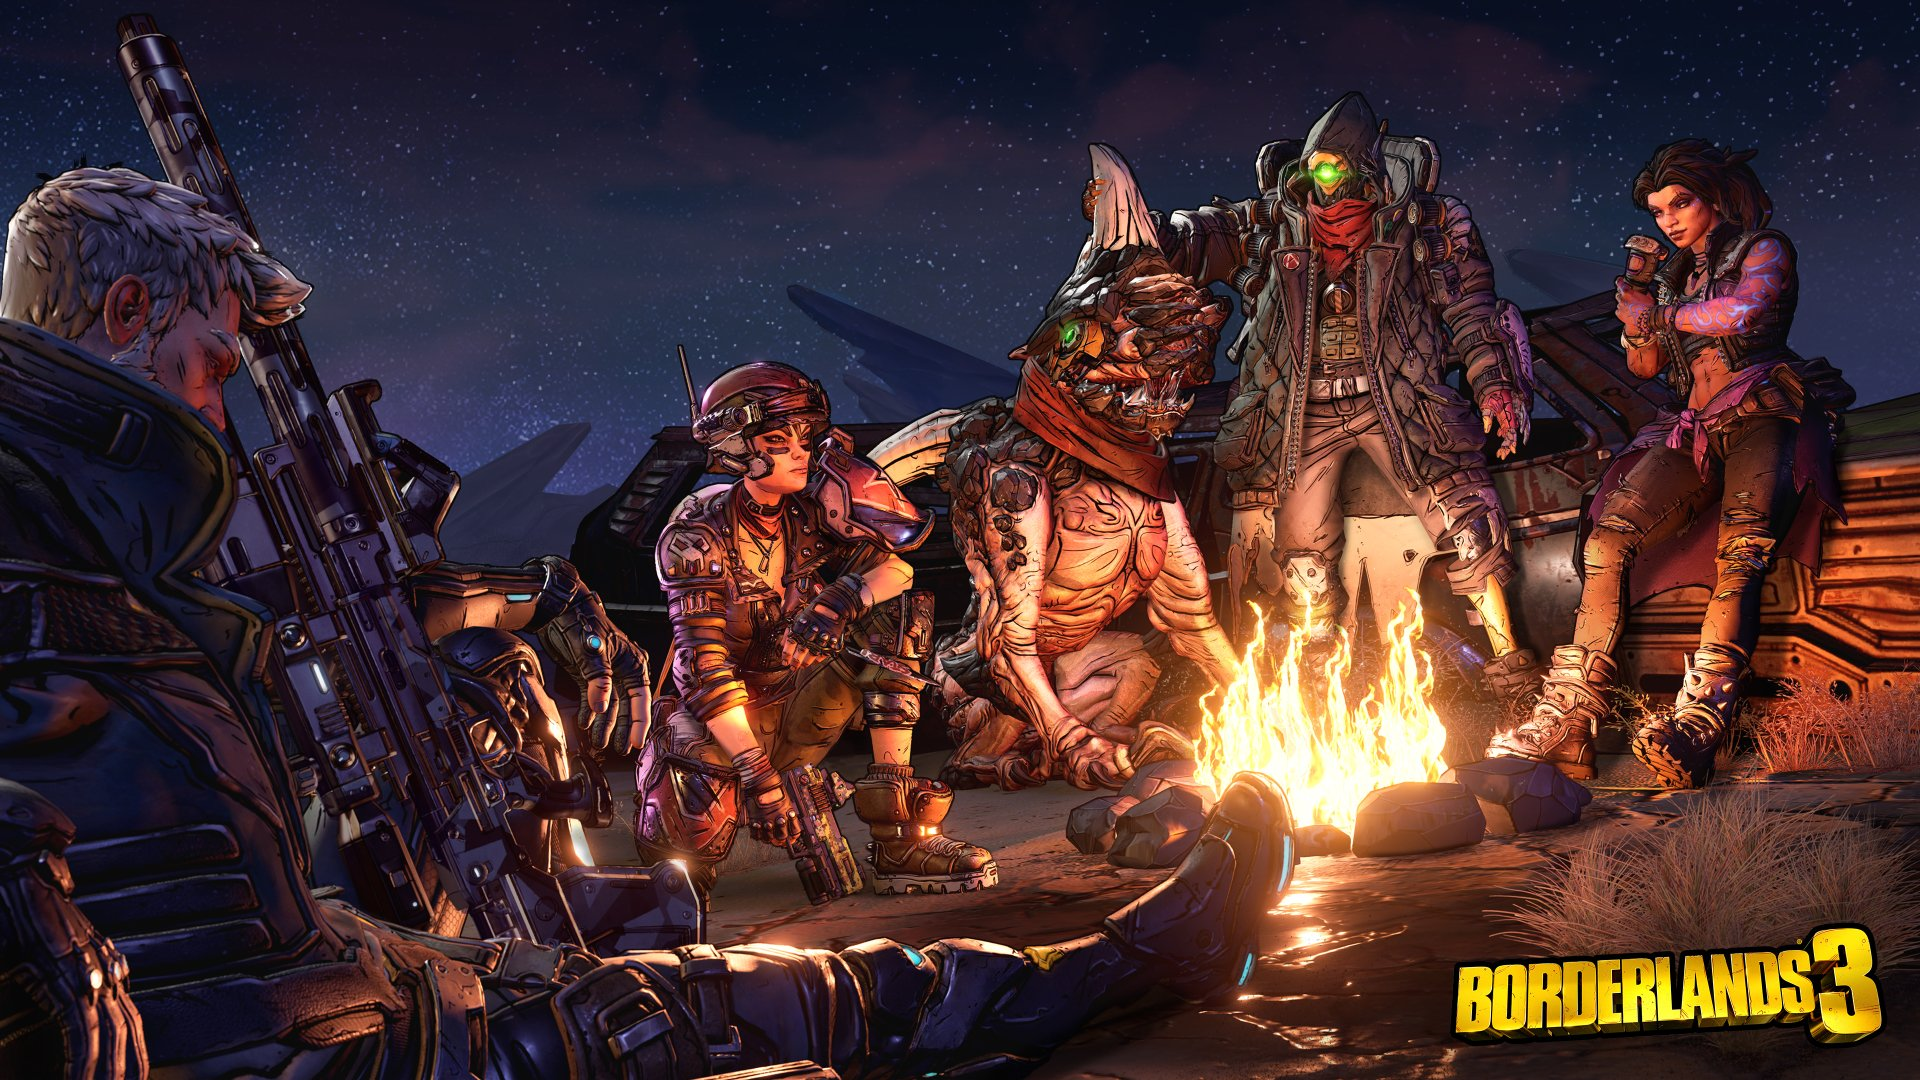 Borderlands 3 4k Ultra HD Wallpaper